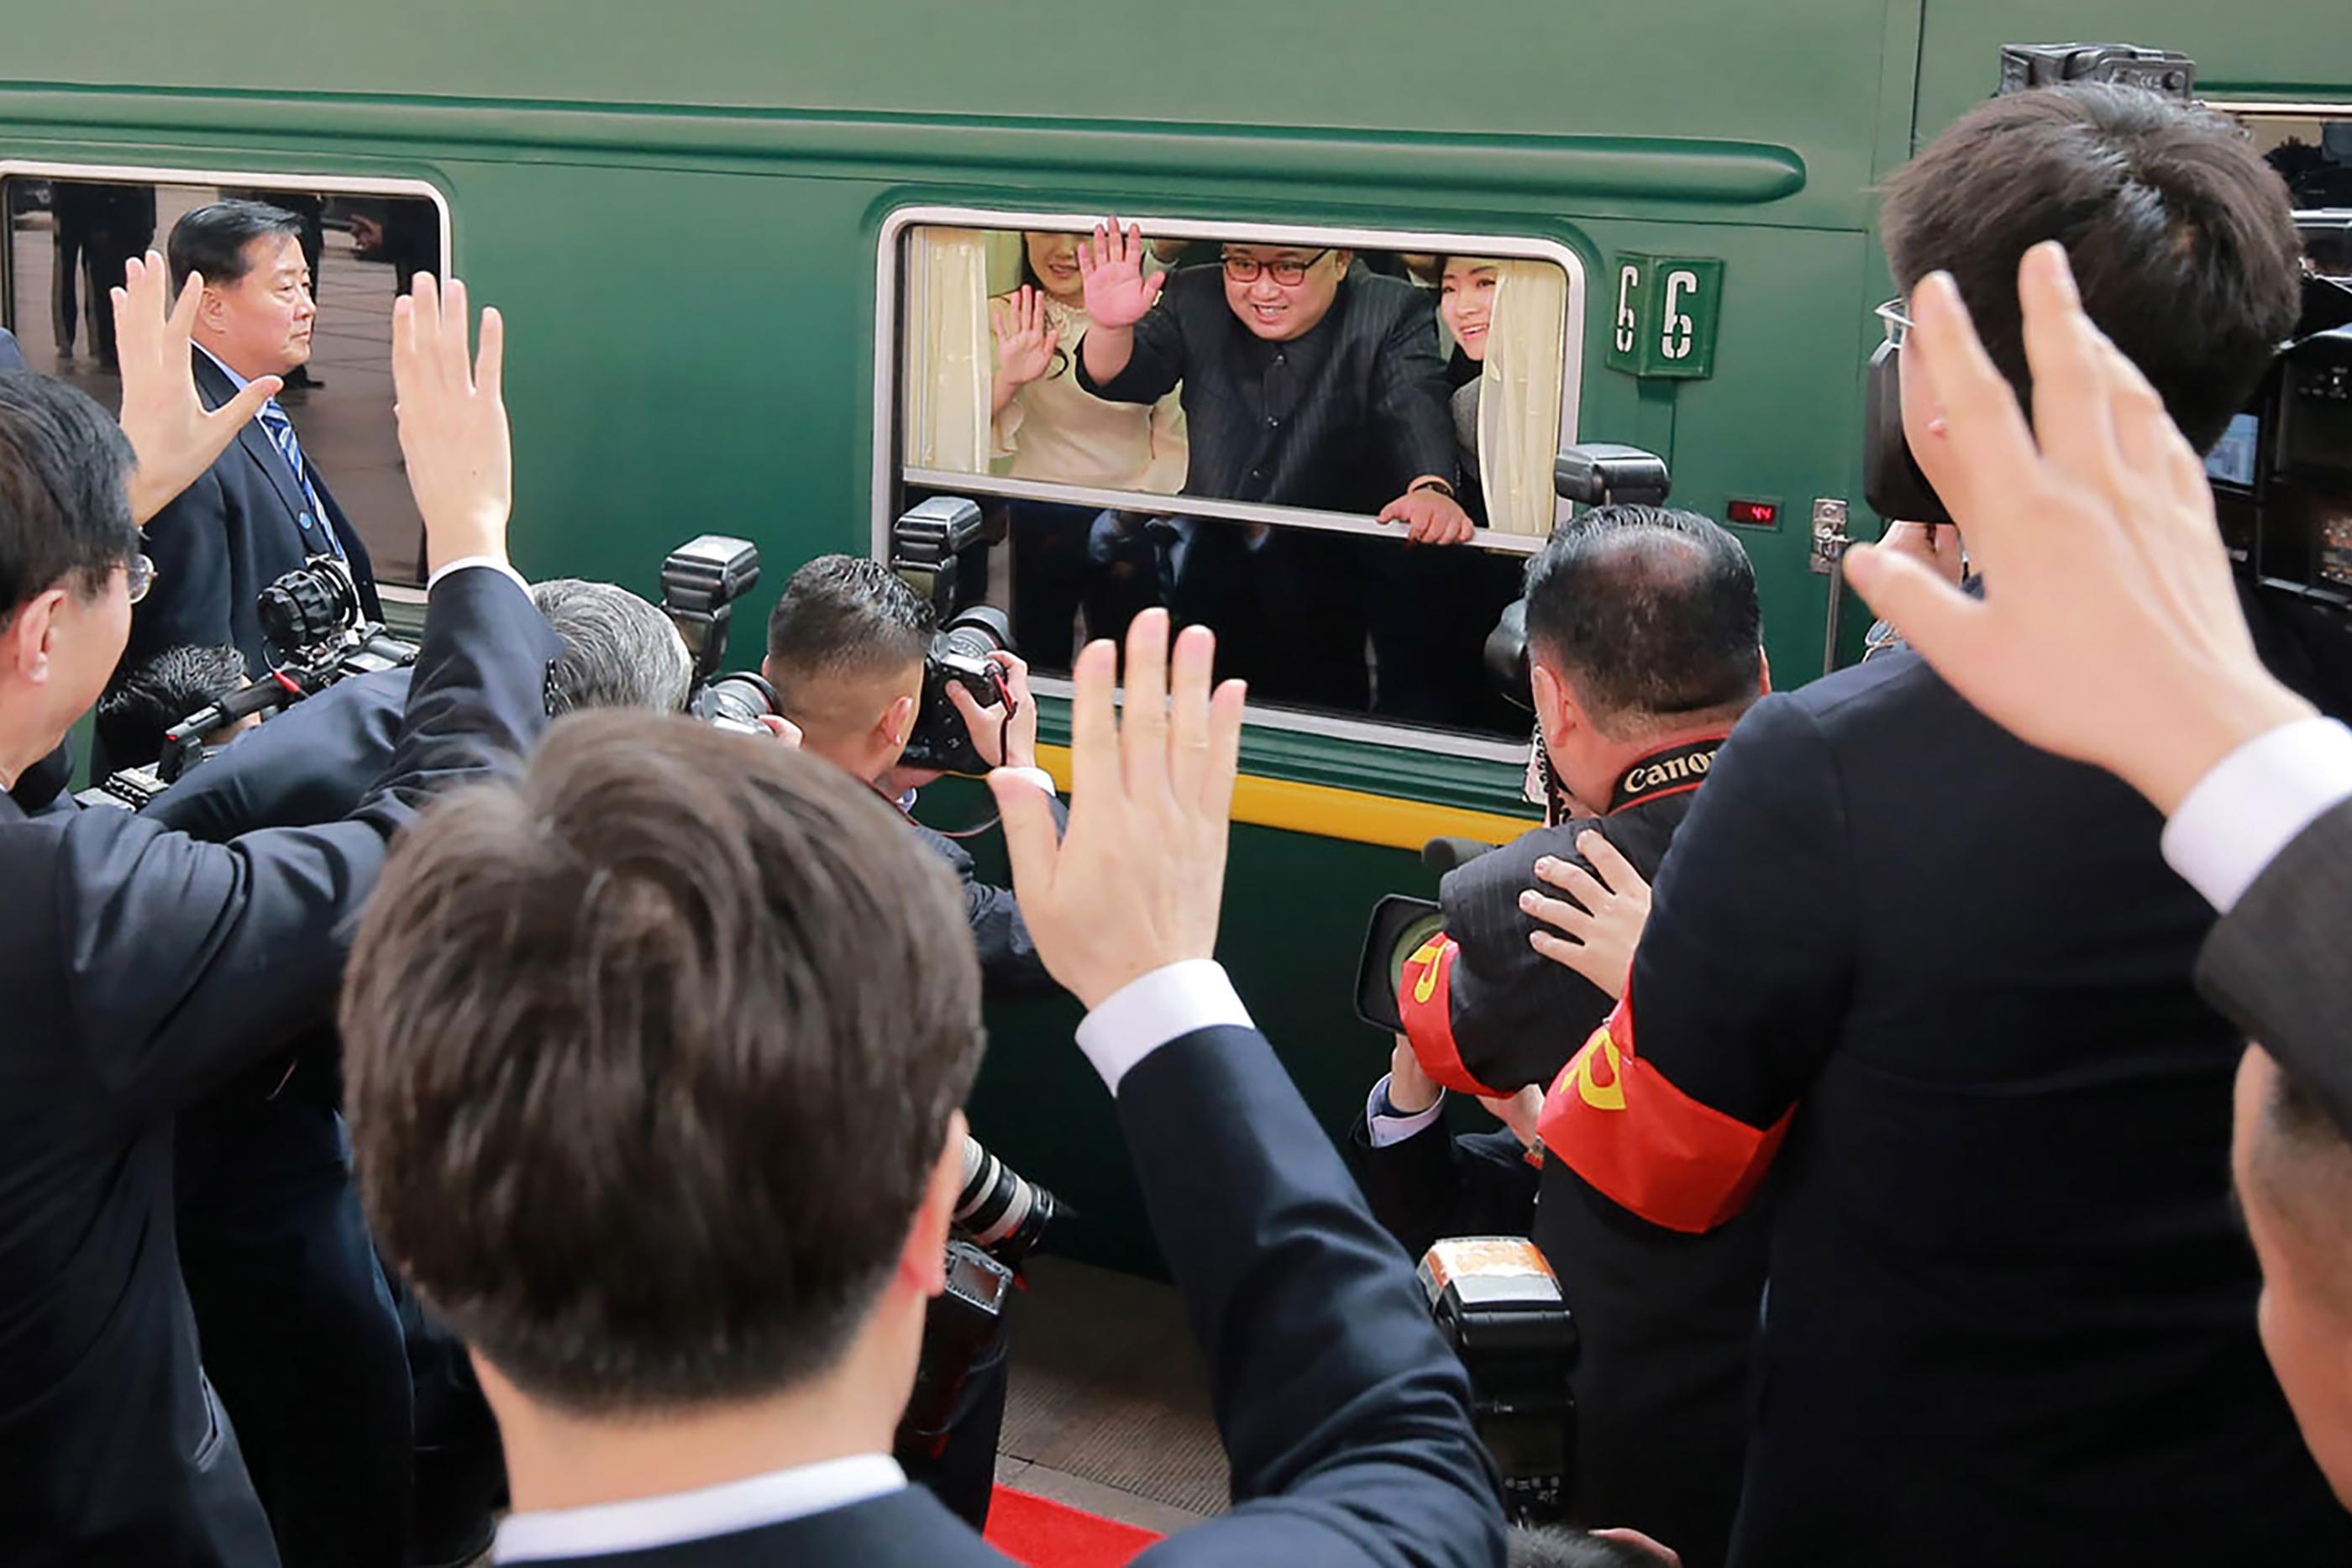 This picture from North Korea's official Korean Central News Agency (KCNA) taken on March 27, 2018 and released on March 28, 2018 shows North Korean leader Kim Jong Un (C) waving from his train as it prepares to depart from Beijing railway station.         North Korean leader Kim Jong Un was treated to a lavish welcome by Chinese President Xi Jinping during a secretive trip to Beijing as both sides seek to repair frayed ties ahead of landmark summits with Seoul and Washington.  / AFP PHOTO / KCNA VIA KNS / - / South Korea OUT / REPUBLIC OF KOREA OUT   ---EDITORS NOTE--- RESTRICTED TO EDITORIAL USE - MANDATORY CREDIT 'AFP PHOTO/KCNA VIA KNS' - NO MARKETING NO ADVERTISING CAMPAIGNS - DISTRIBUTED AS A SERVICE TO CLIENTS         THIS PICTURE WAS MADE AVAILABLE BY A THIRD PARTY. AFP CAN NOT INDEPENDENTLY VERIFY THE AUTHENTICITY, LOCATION, DATE AND CONTENT OF THIS IMAGE. THIS PHOTO IS DISTRIBUTED EXACTLY AS RECEIVED BY AFP.  /         (Photo credit should read -/AFP/Getty Images)